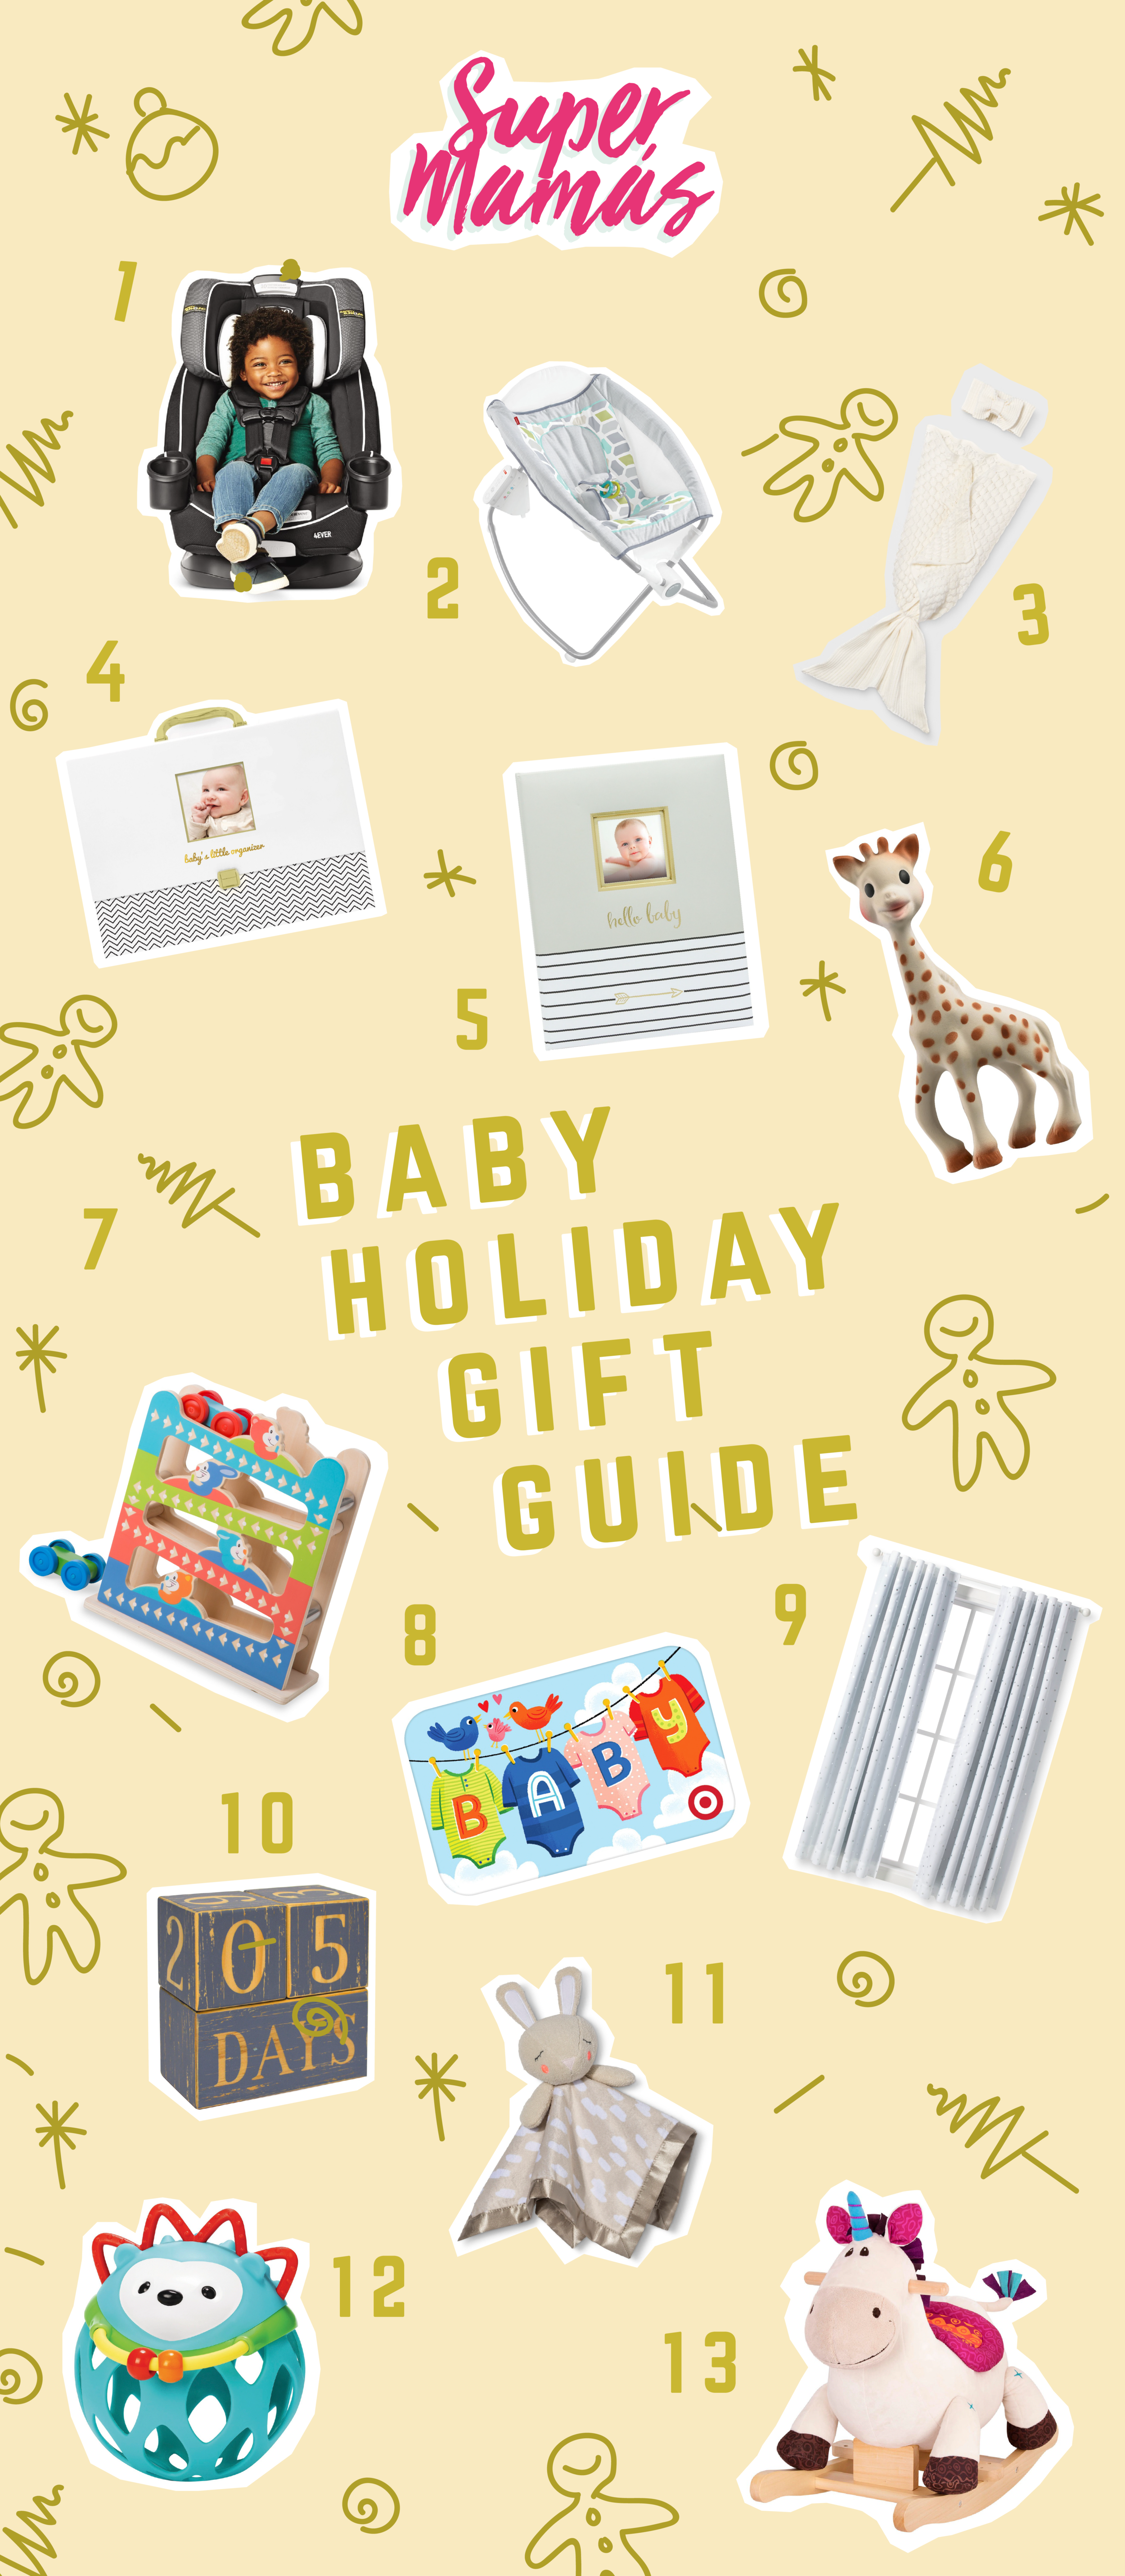 GUIFT_GUIDE_BABY-03.png